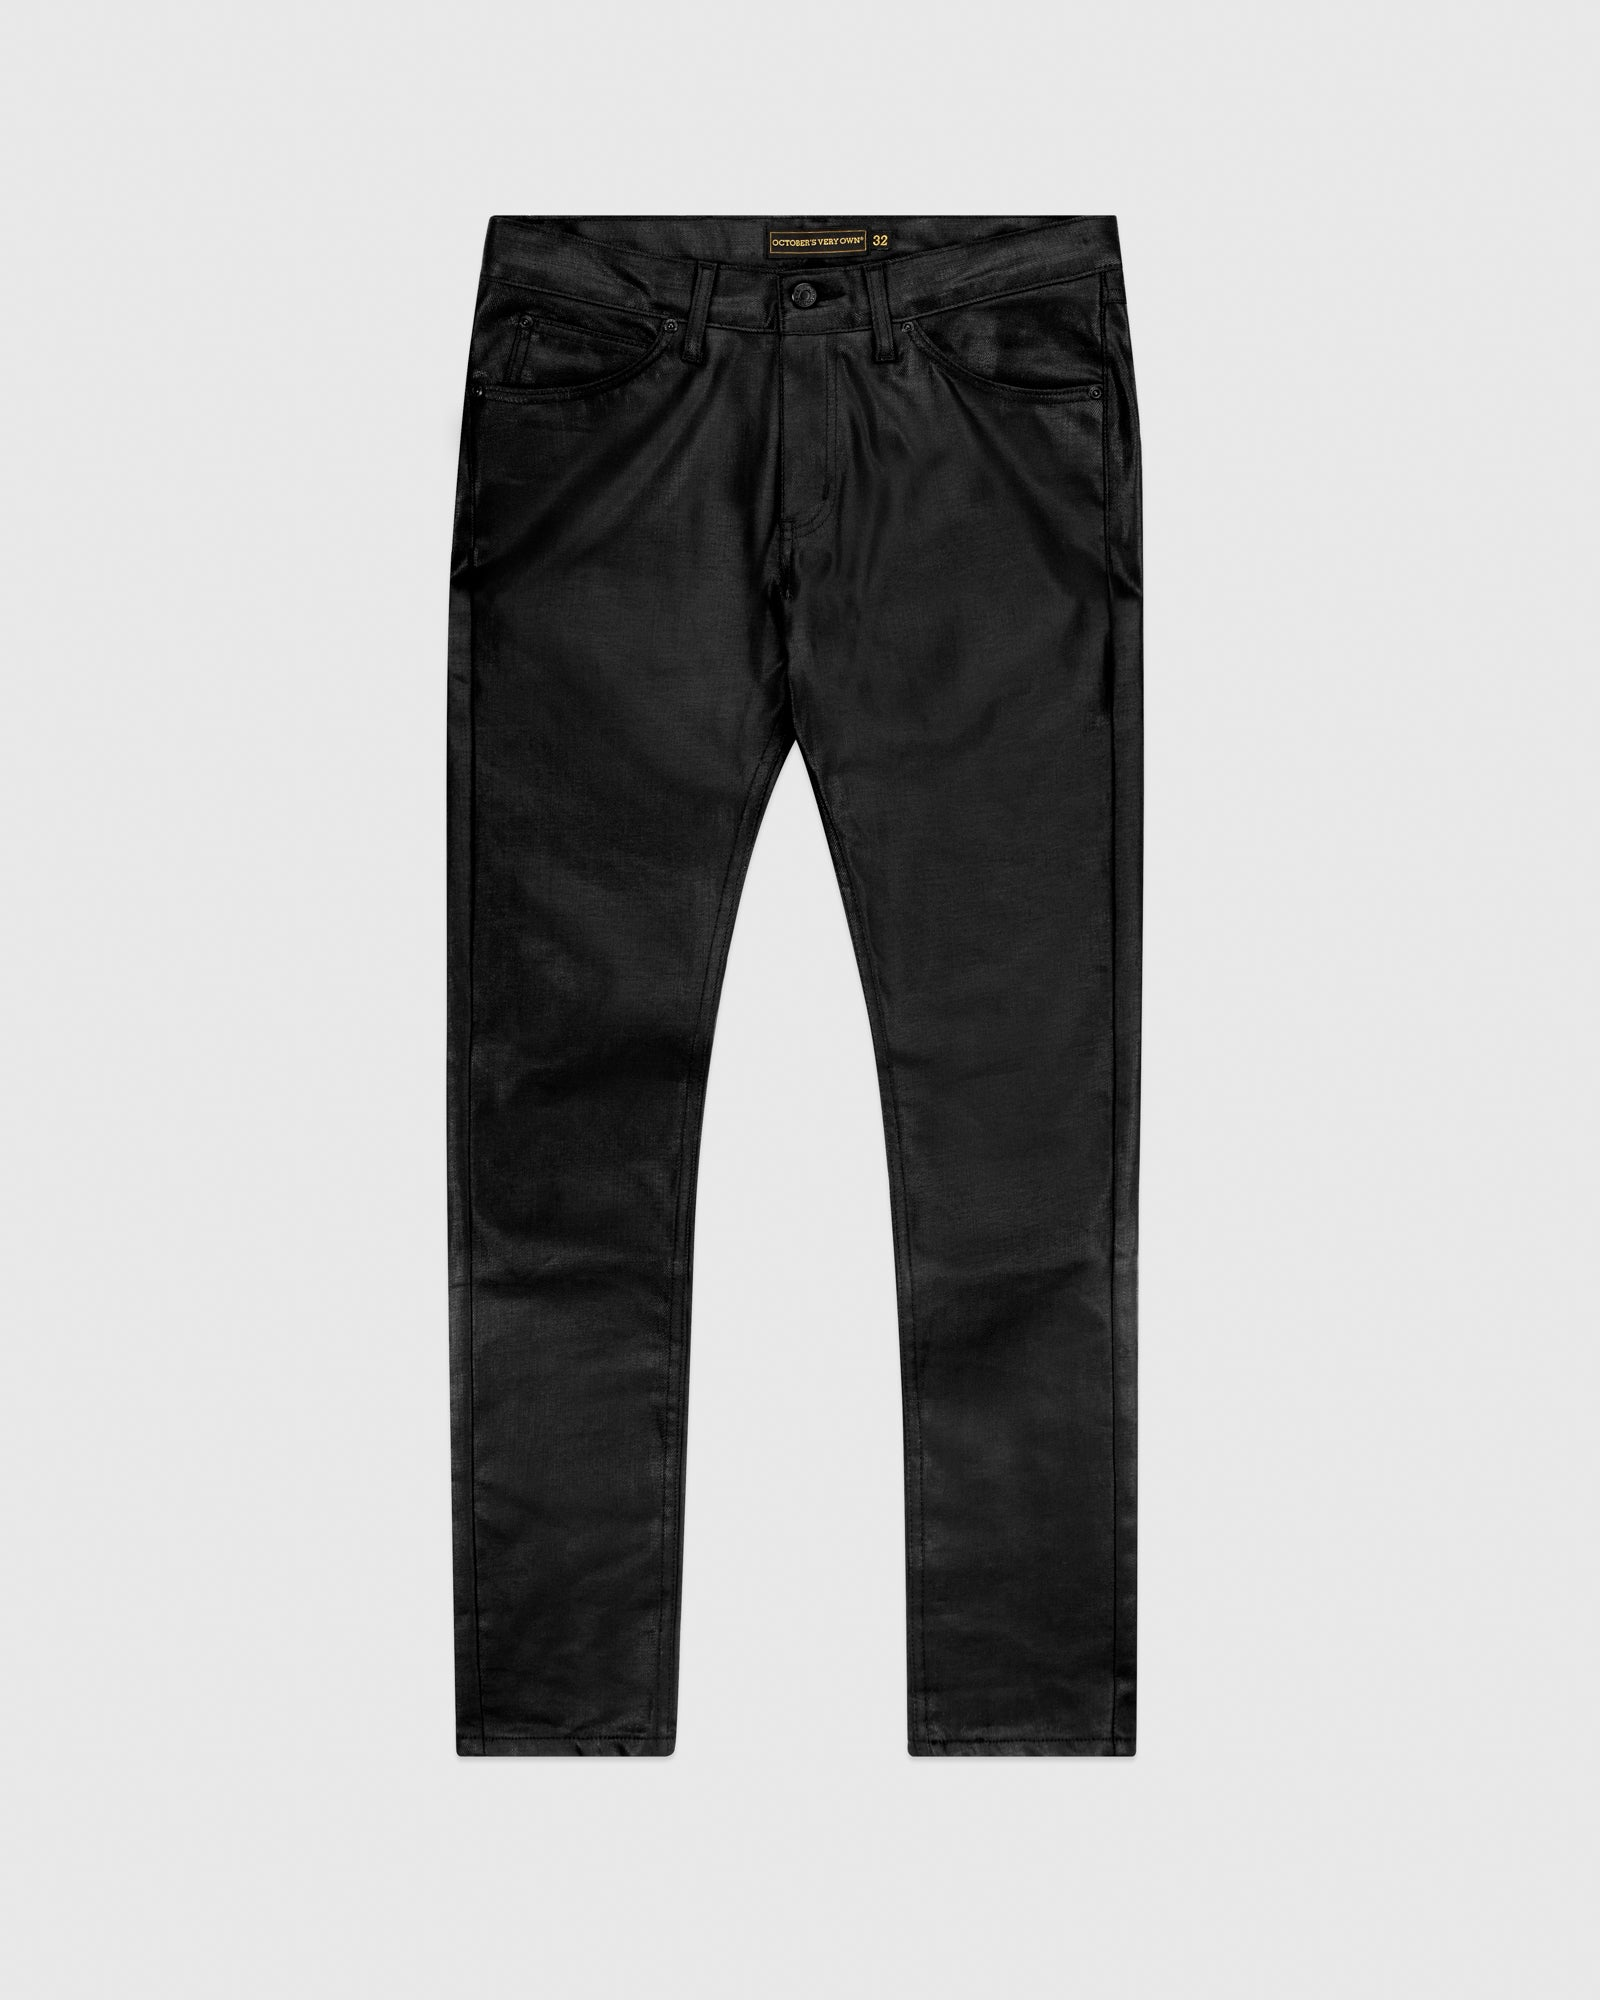 WAXED JEANS - BLACK IMAGE #1